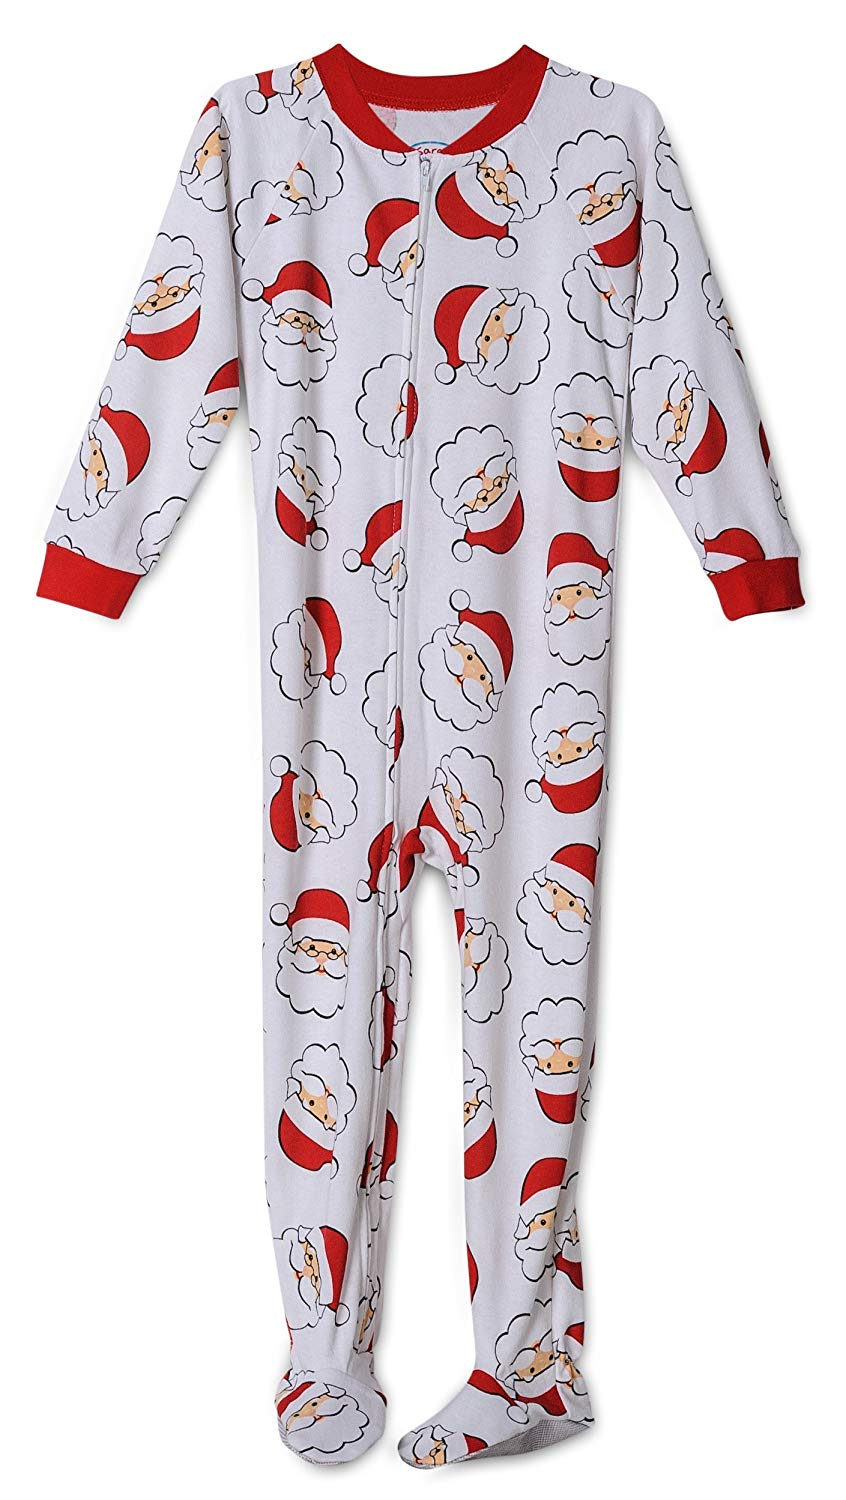 79bb9f6b47 Get Quotations · Santa Claus Print Footed Onesie Christmas Pajama